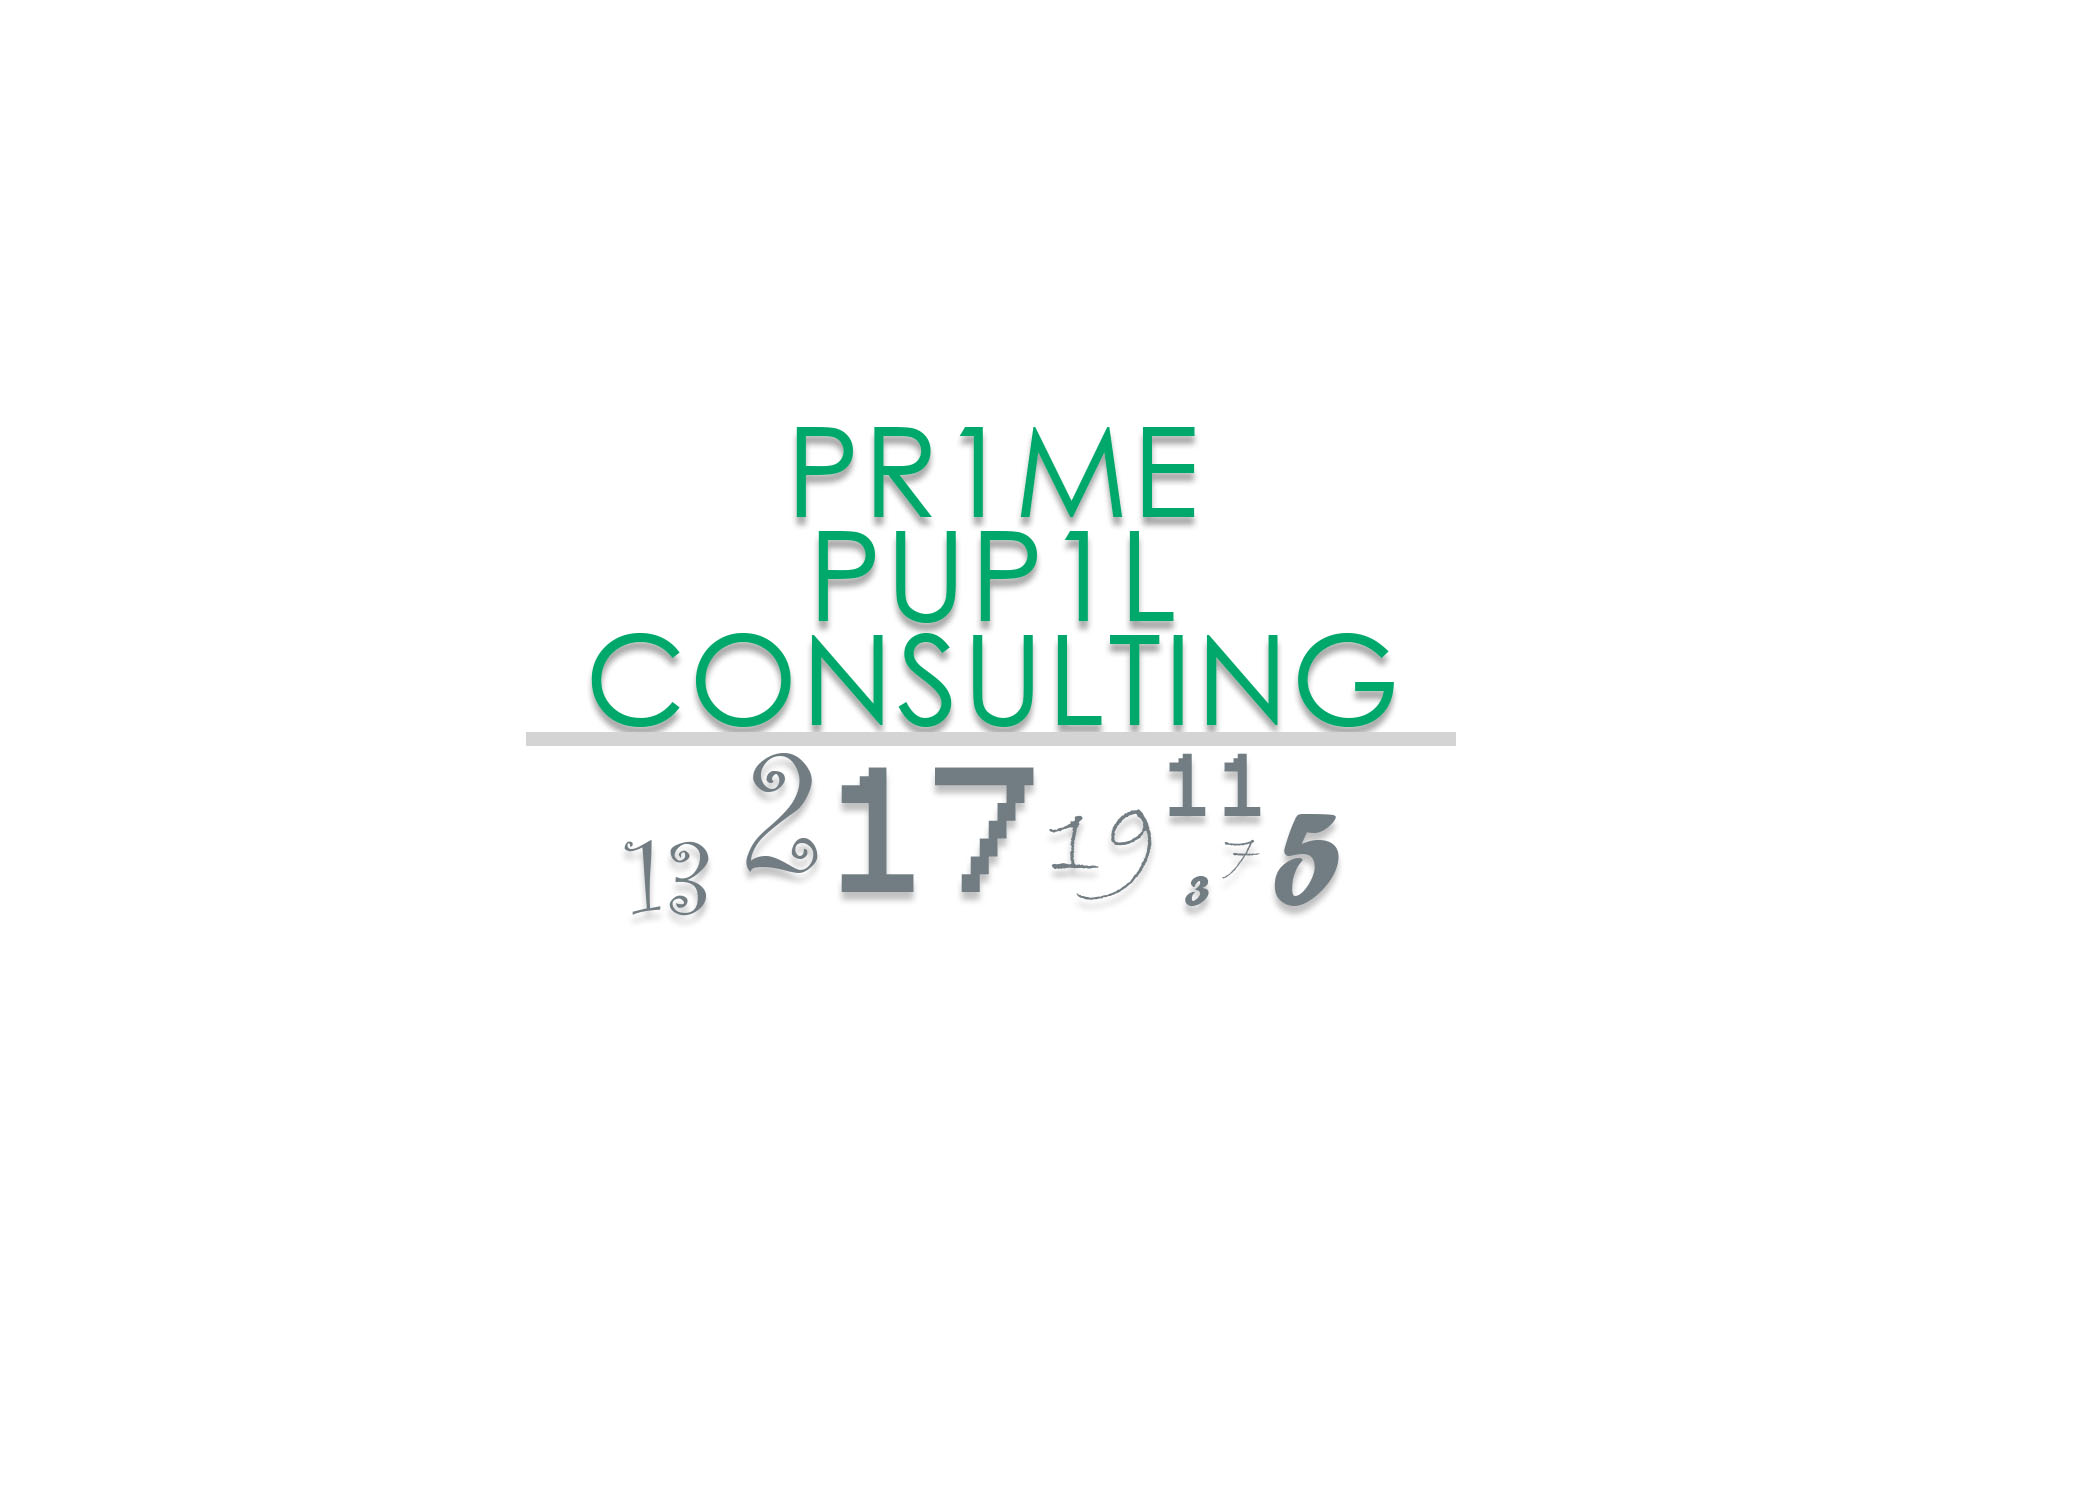 Prime Pupil Consulting.jpg